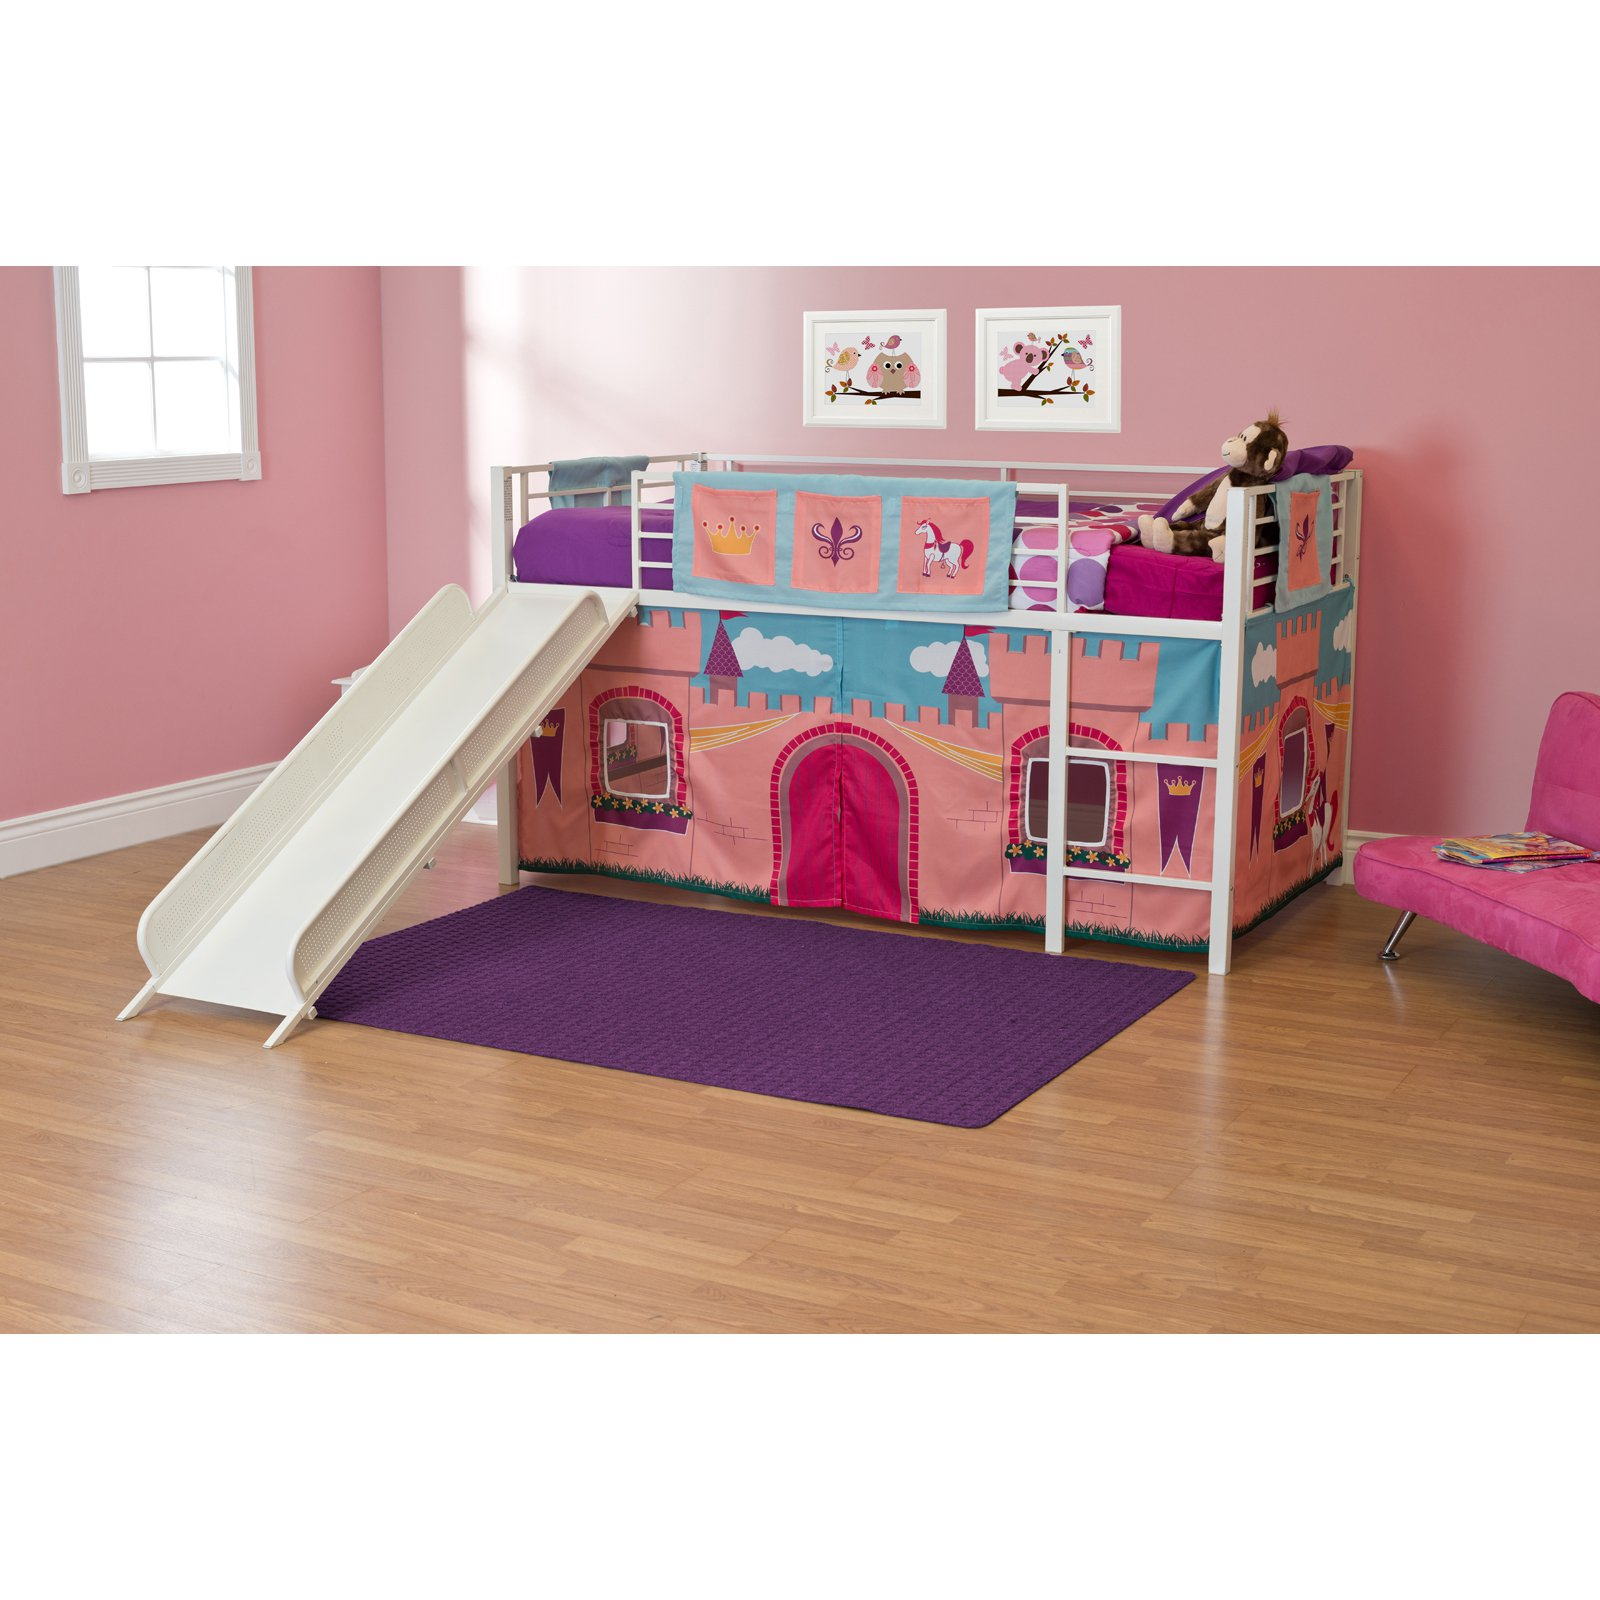 Princess Castle Junior Fantasy Loft with Slide - White